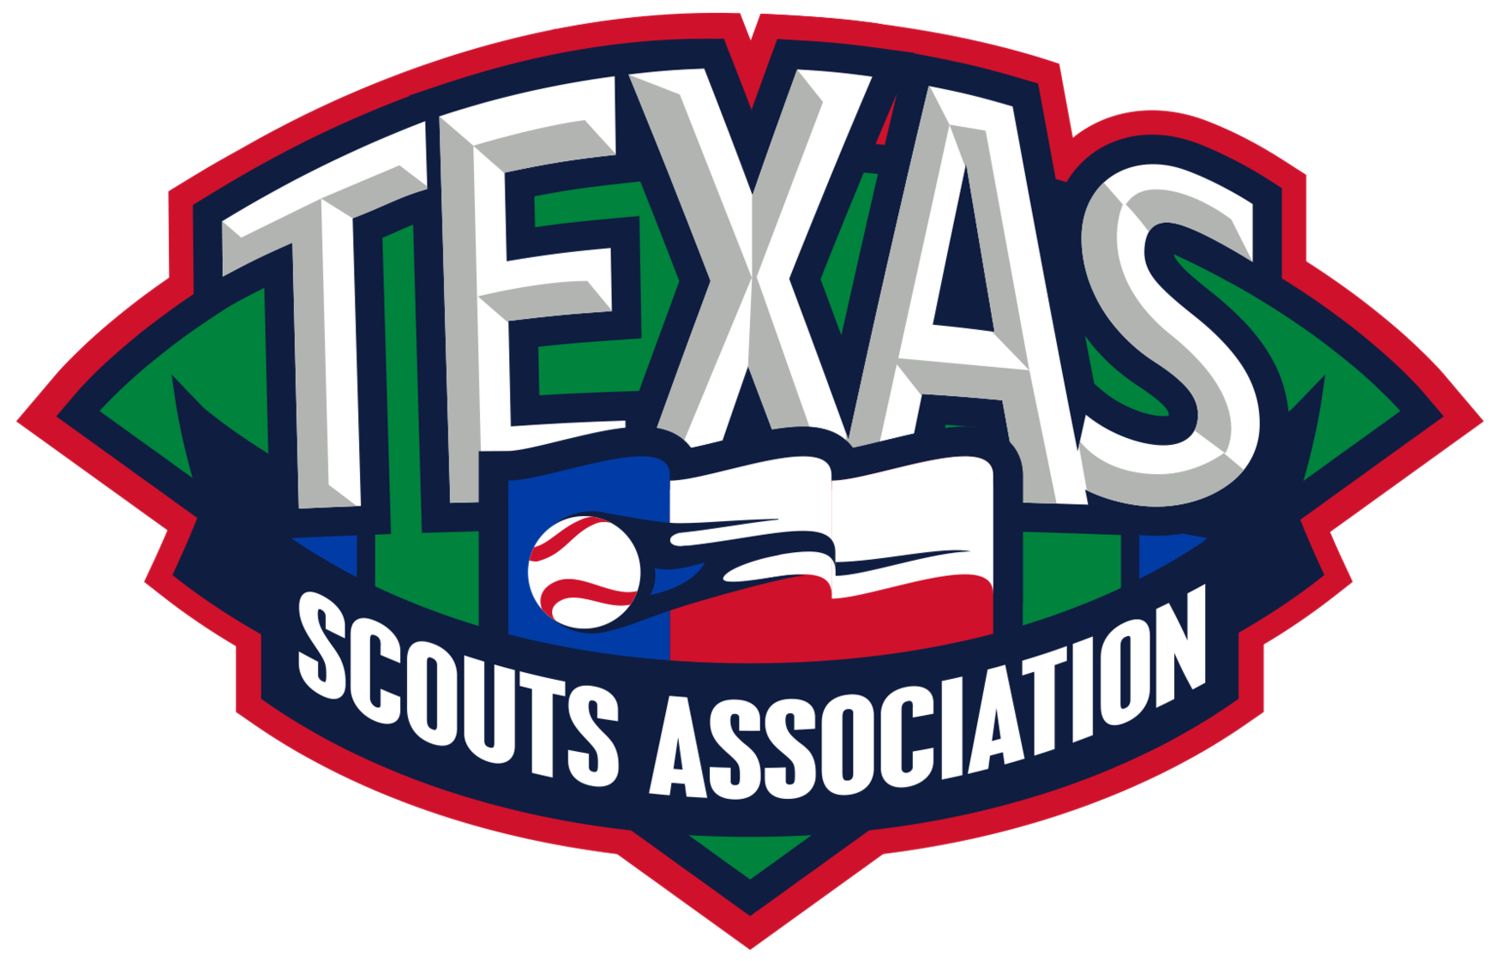 Texas Scouts Association